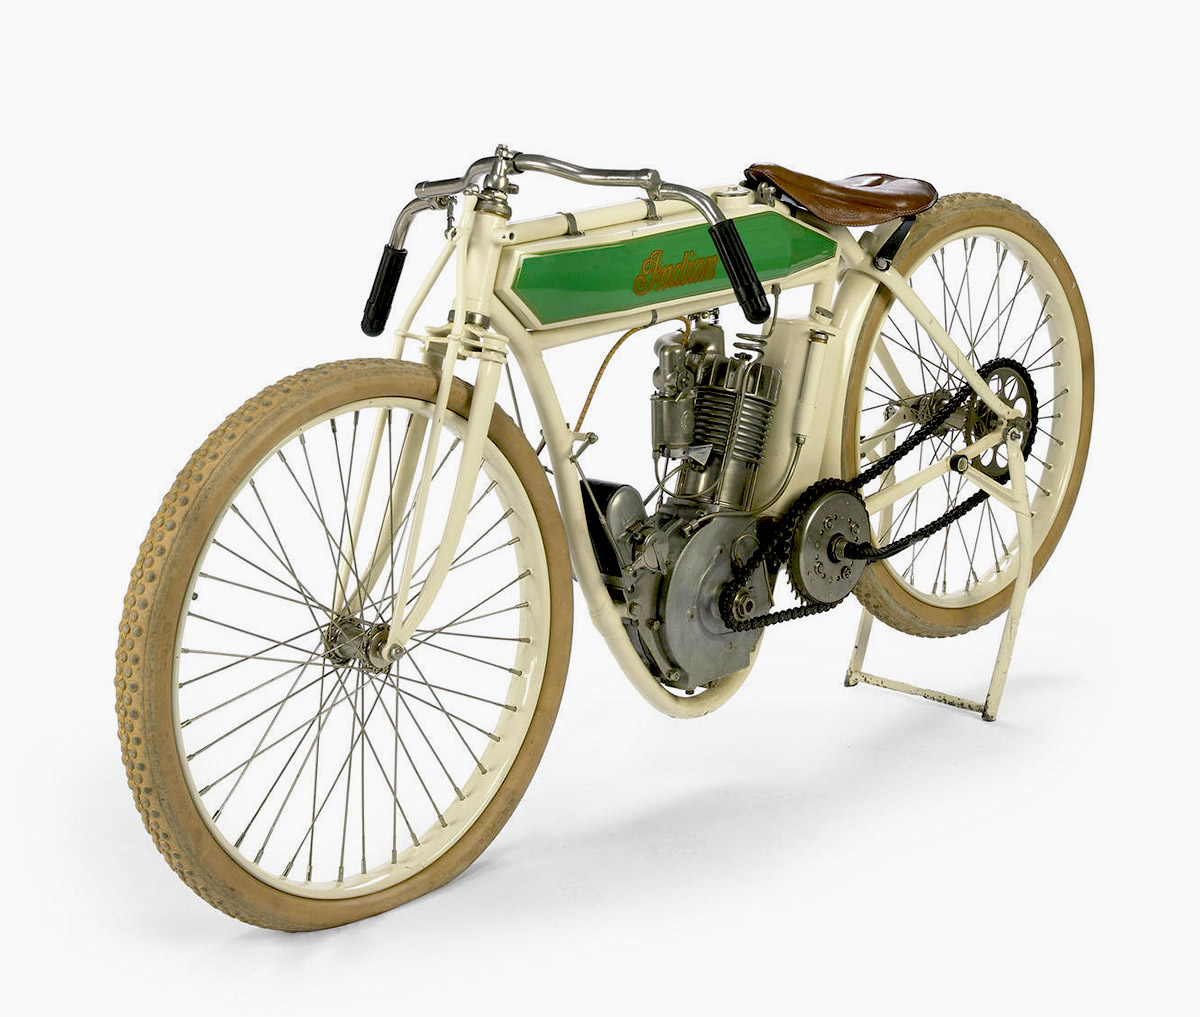 Antique Indian Motorcycles For Sale ... Indian 101 Scout Motorcycle. on 1930s indian motorcycles for sale